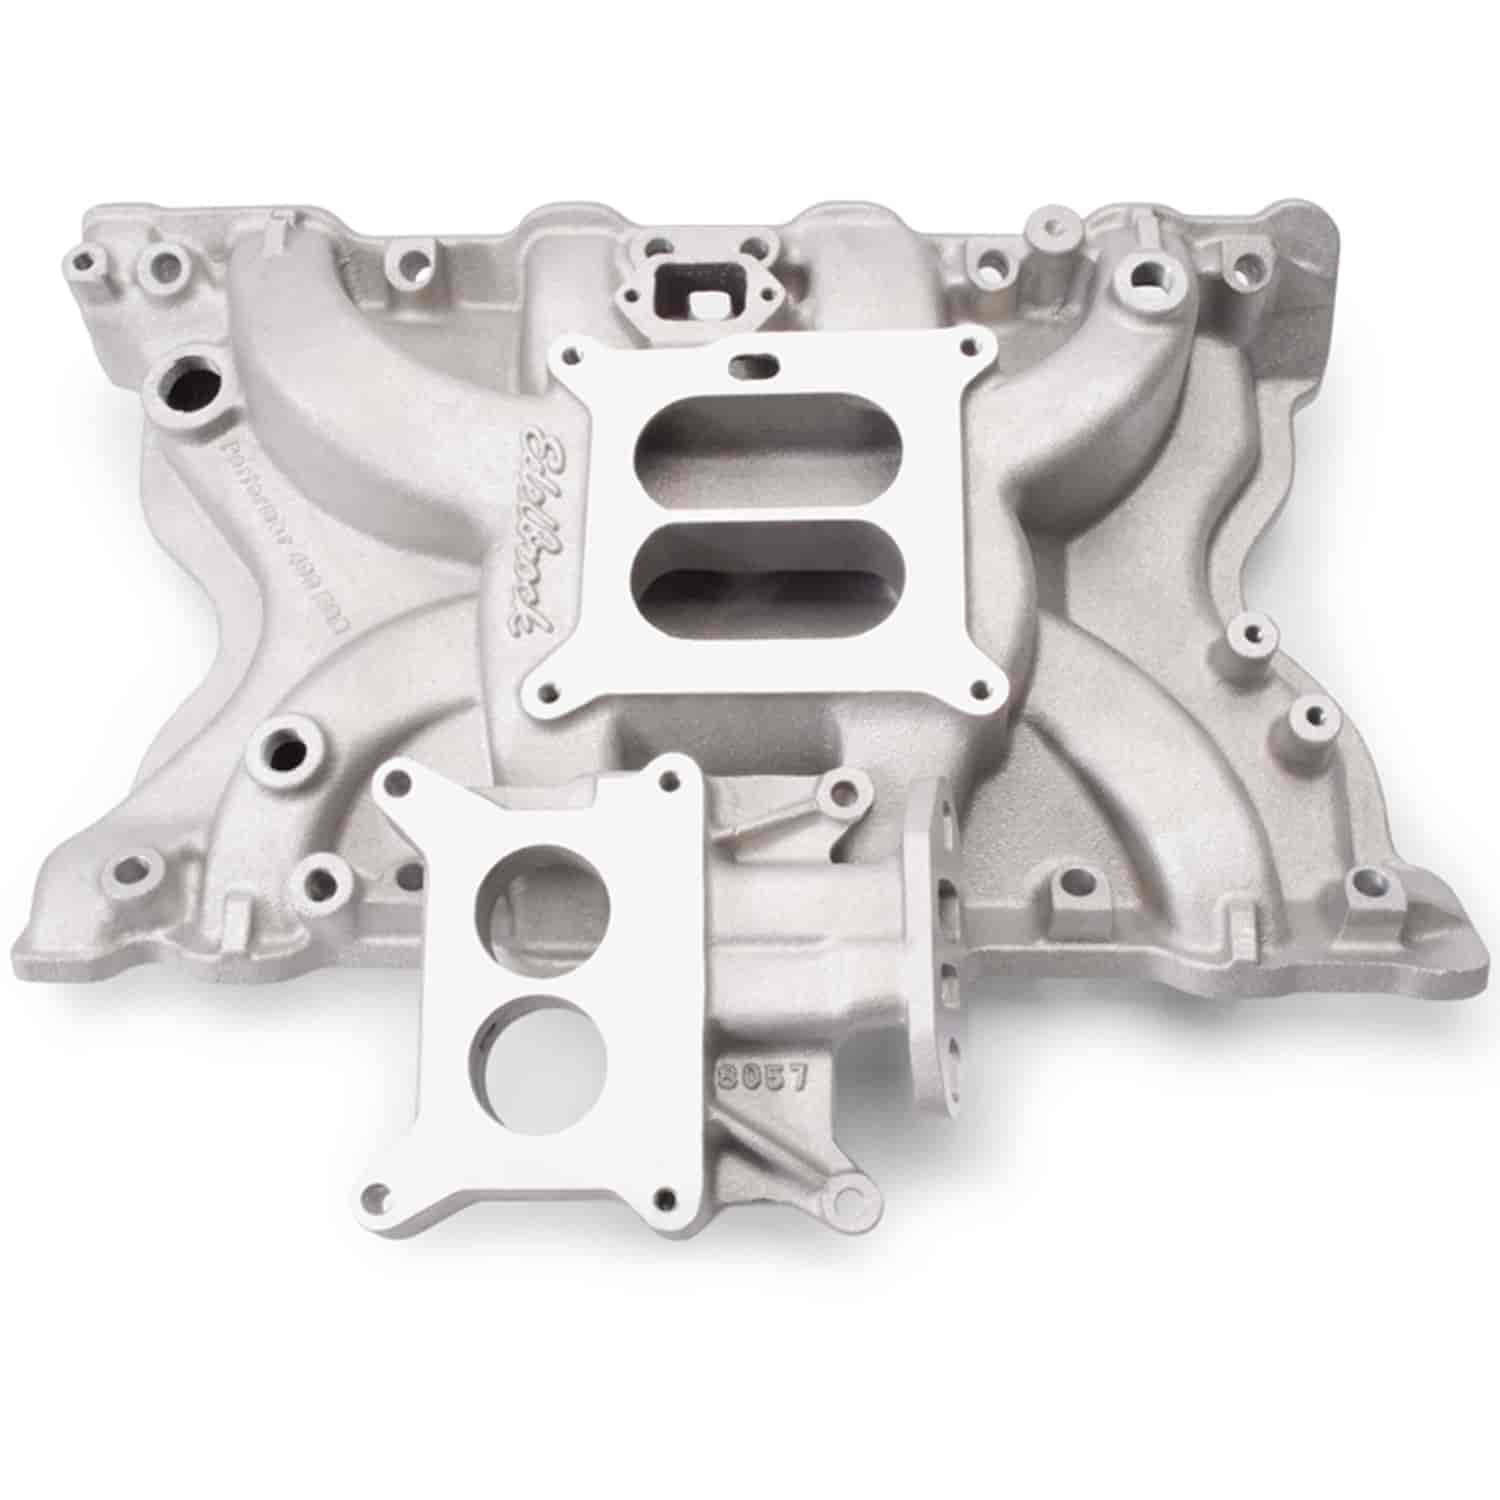 Edelbrock 3771 Performer 400 Egr Ford Intake Manifold Jegs 1980 Bronco Air Box